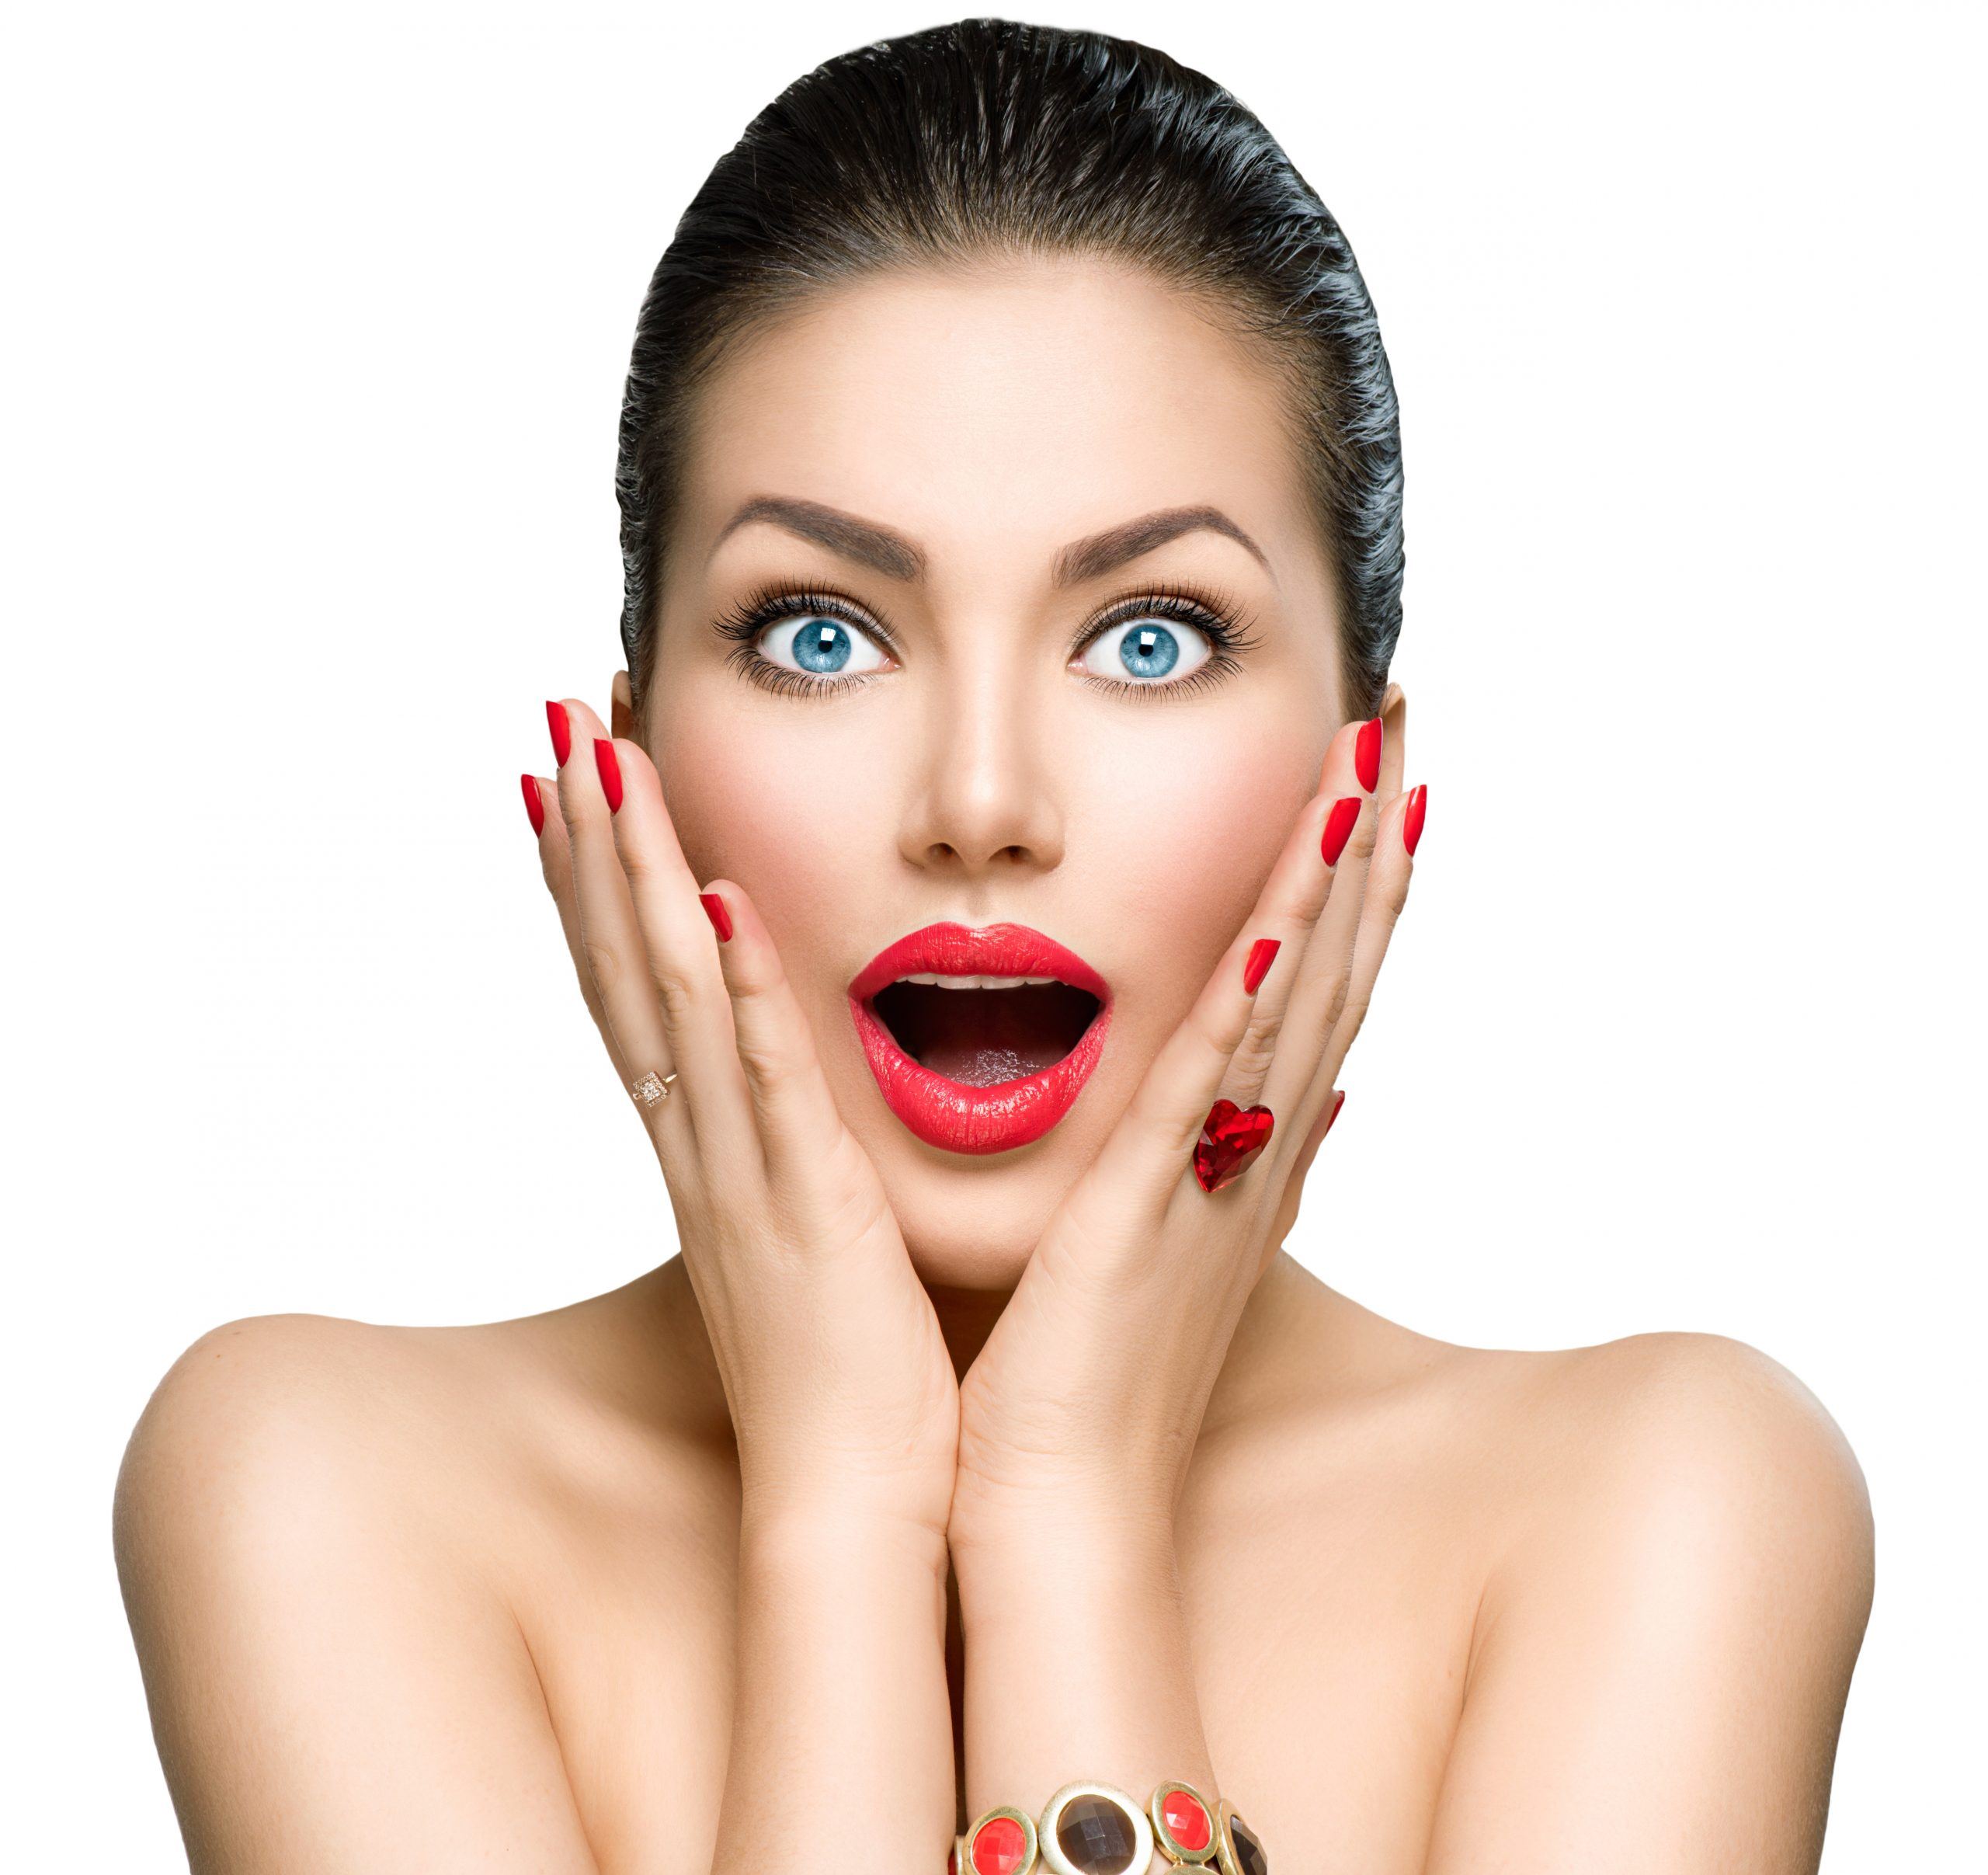 Popular Non-Surgical Procedures During the New Year